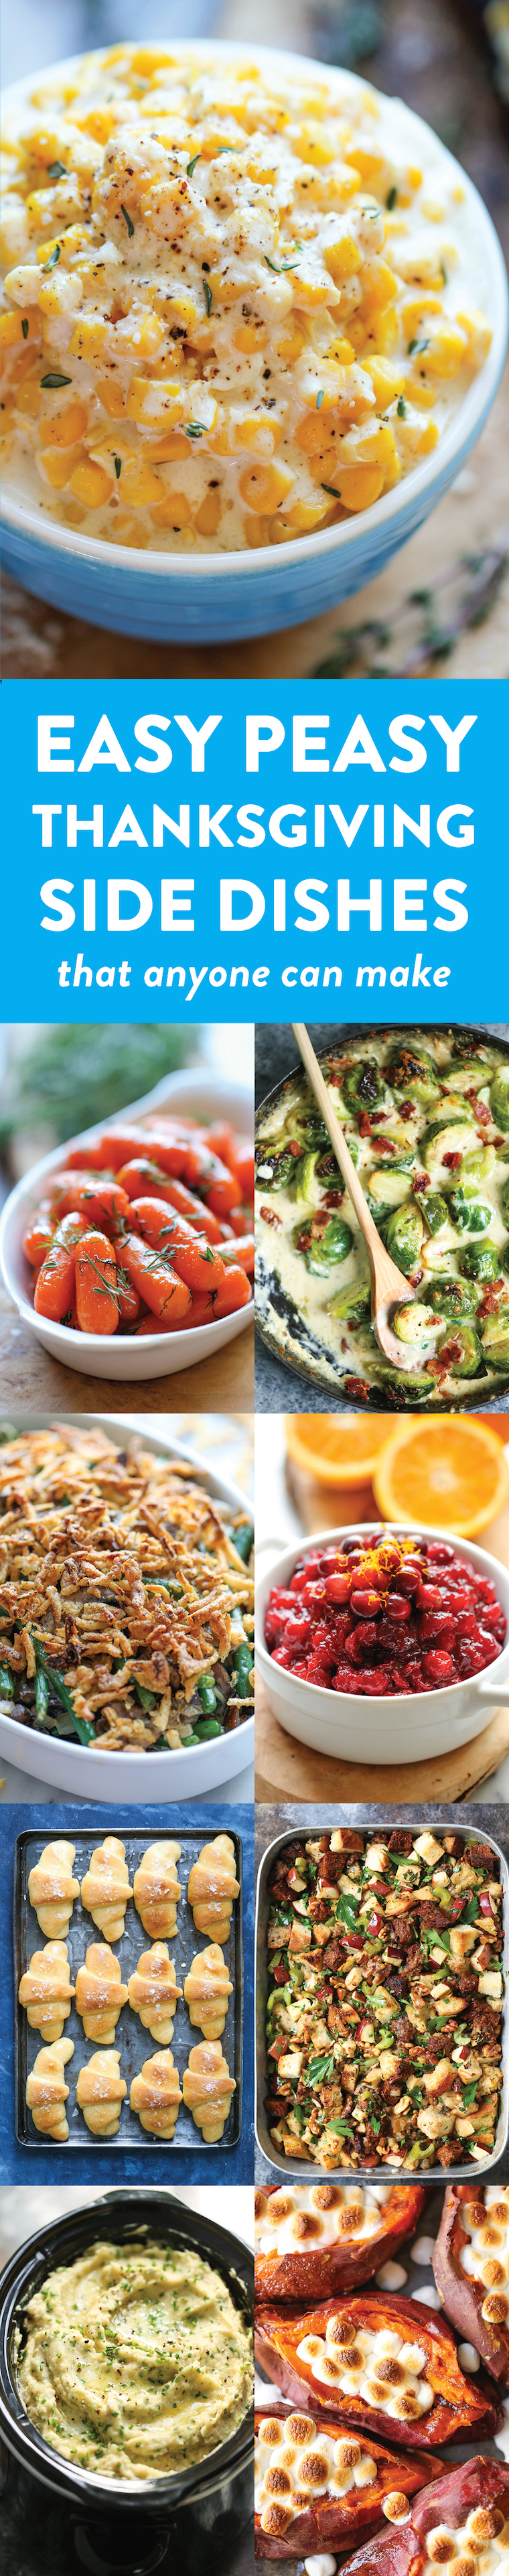 Easy Peasy Thanksgiving Side Dishes That Anyone Can Make - Classic sides that are fool-proof! So easy and so impressive - all guests will be full and happy!